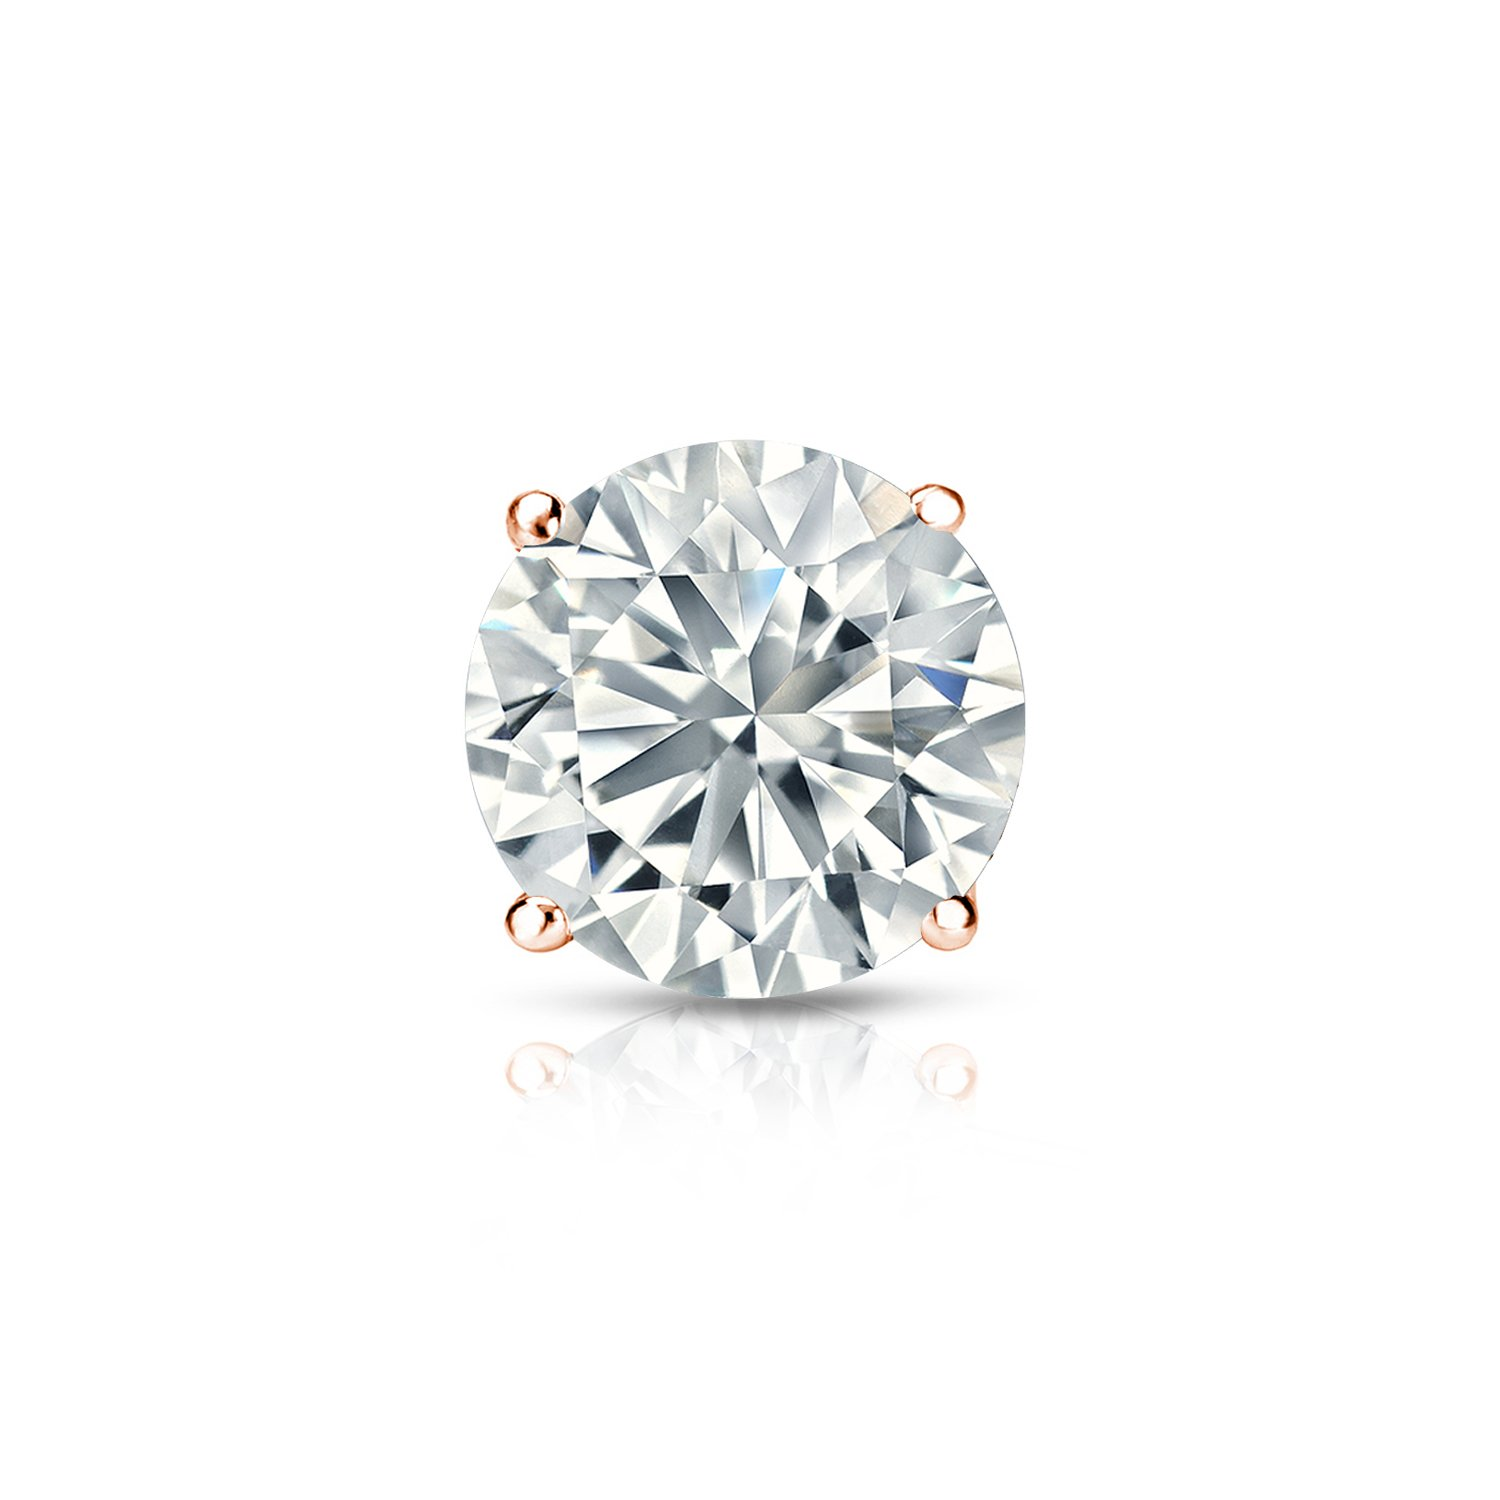 1//8-1cttw,Excellent Quality 14k Rose Gold Round Diamond Simulant CZ SINGLE STUD Earring 4-Prong